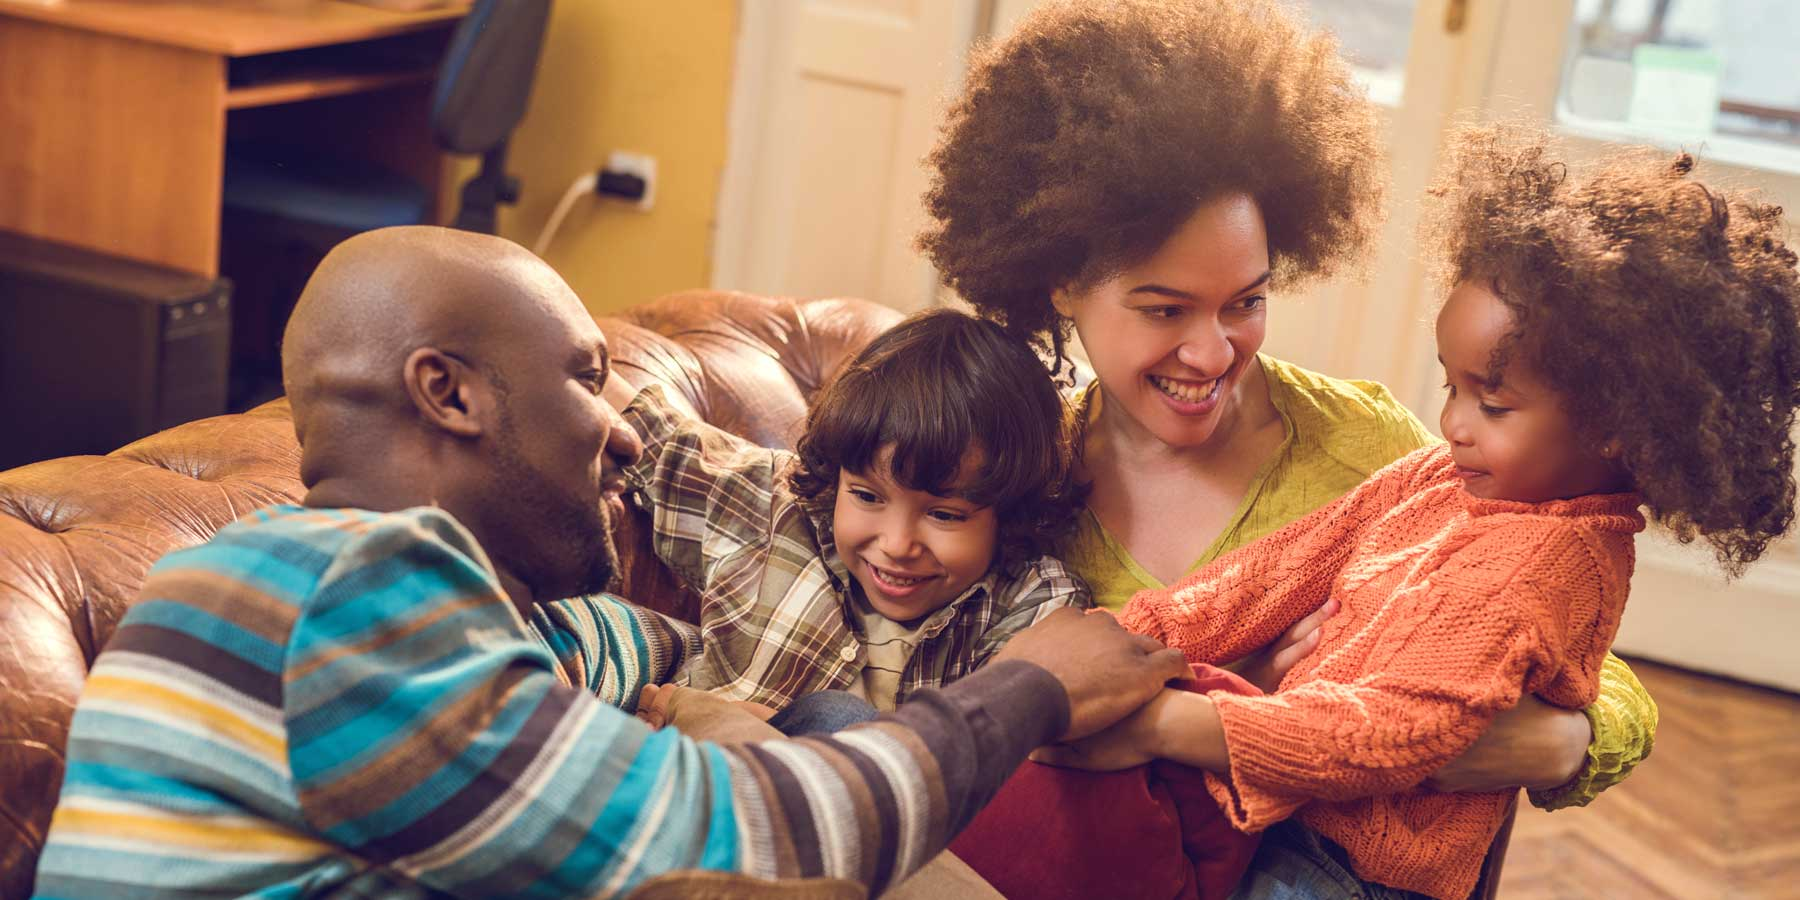 What makes a great foster home?